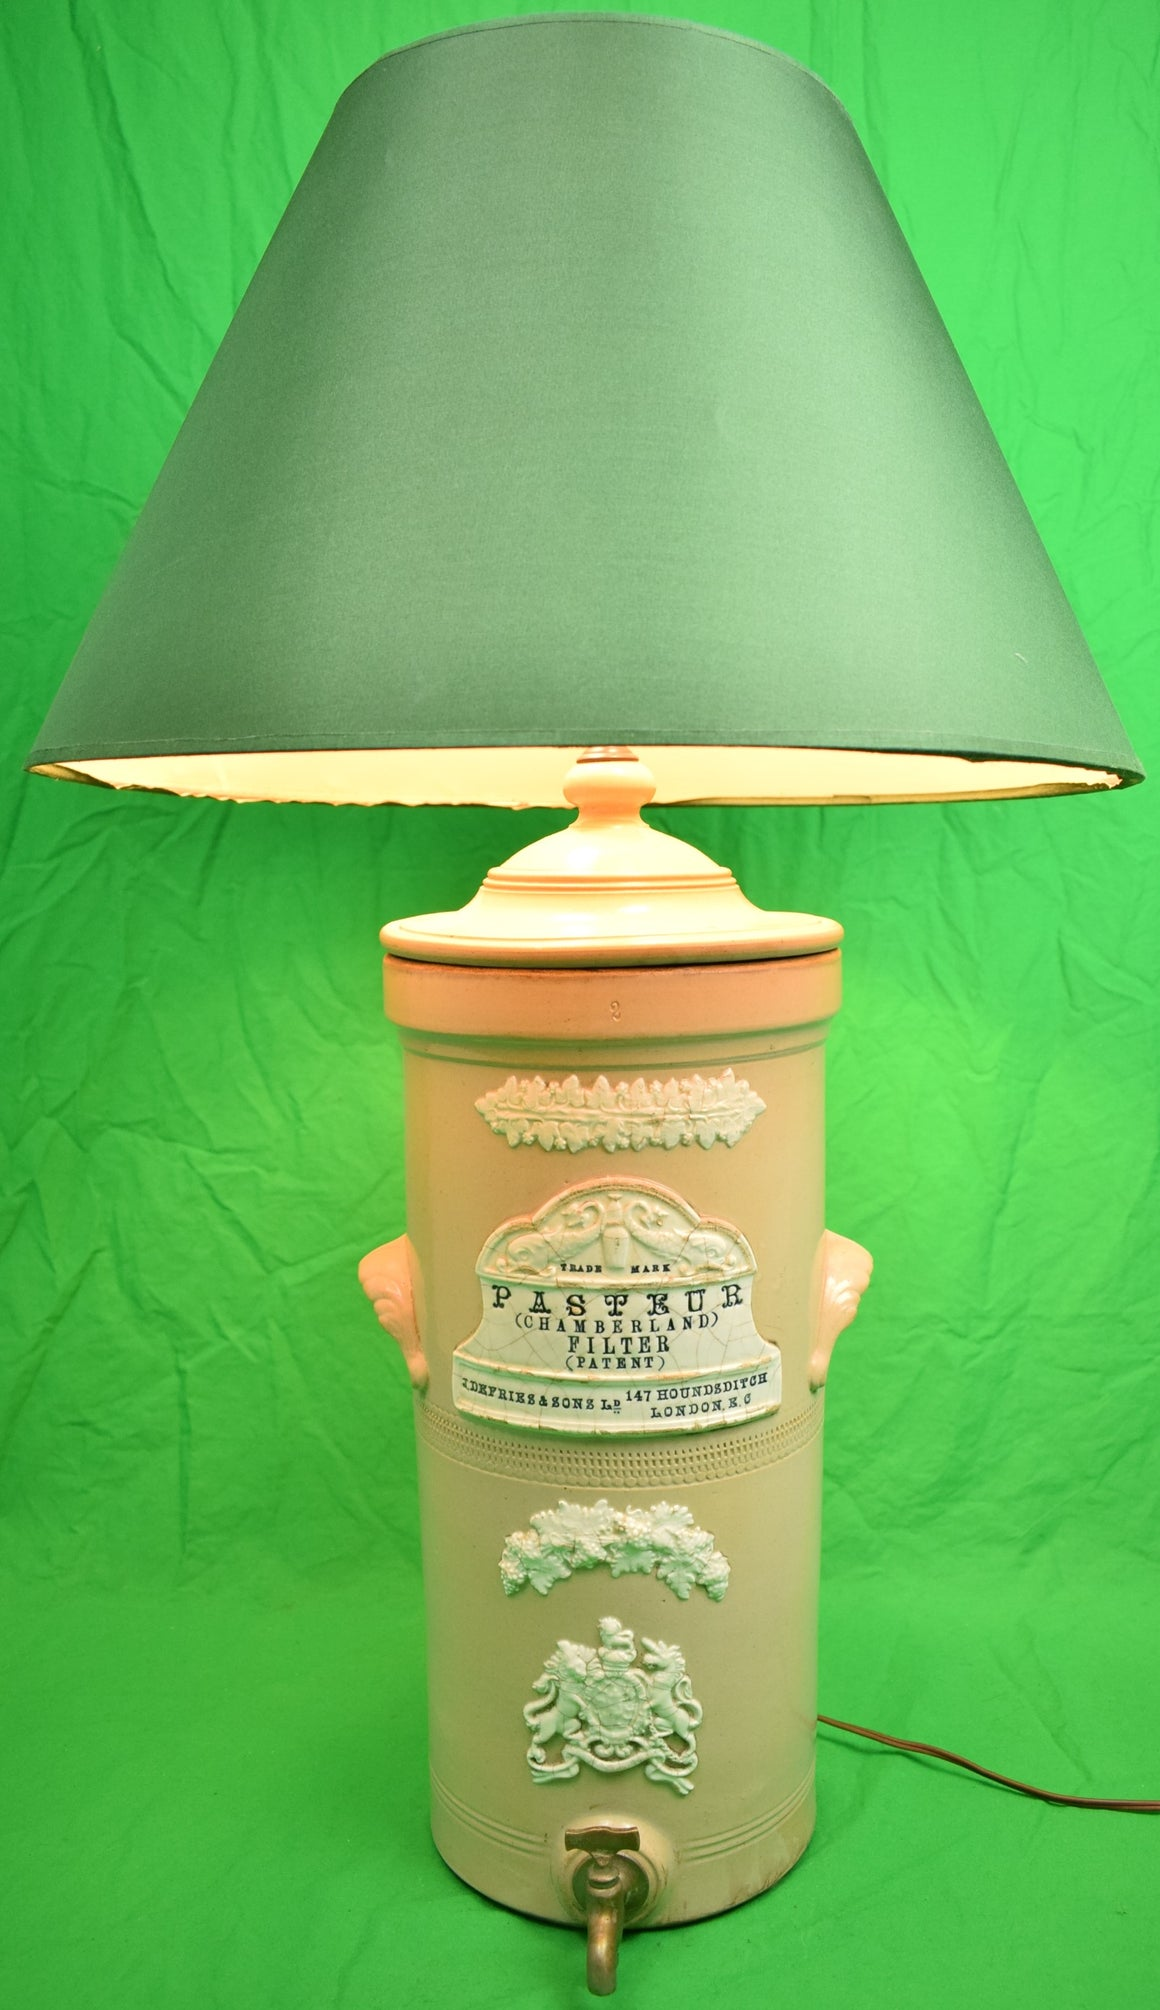 Apothecary Pasteur English Lamp w/ Spout